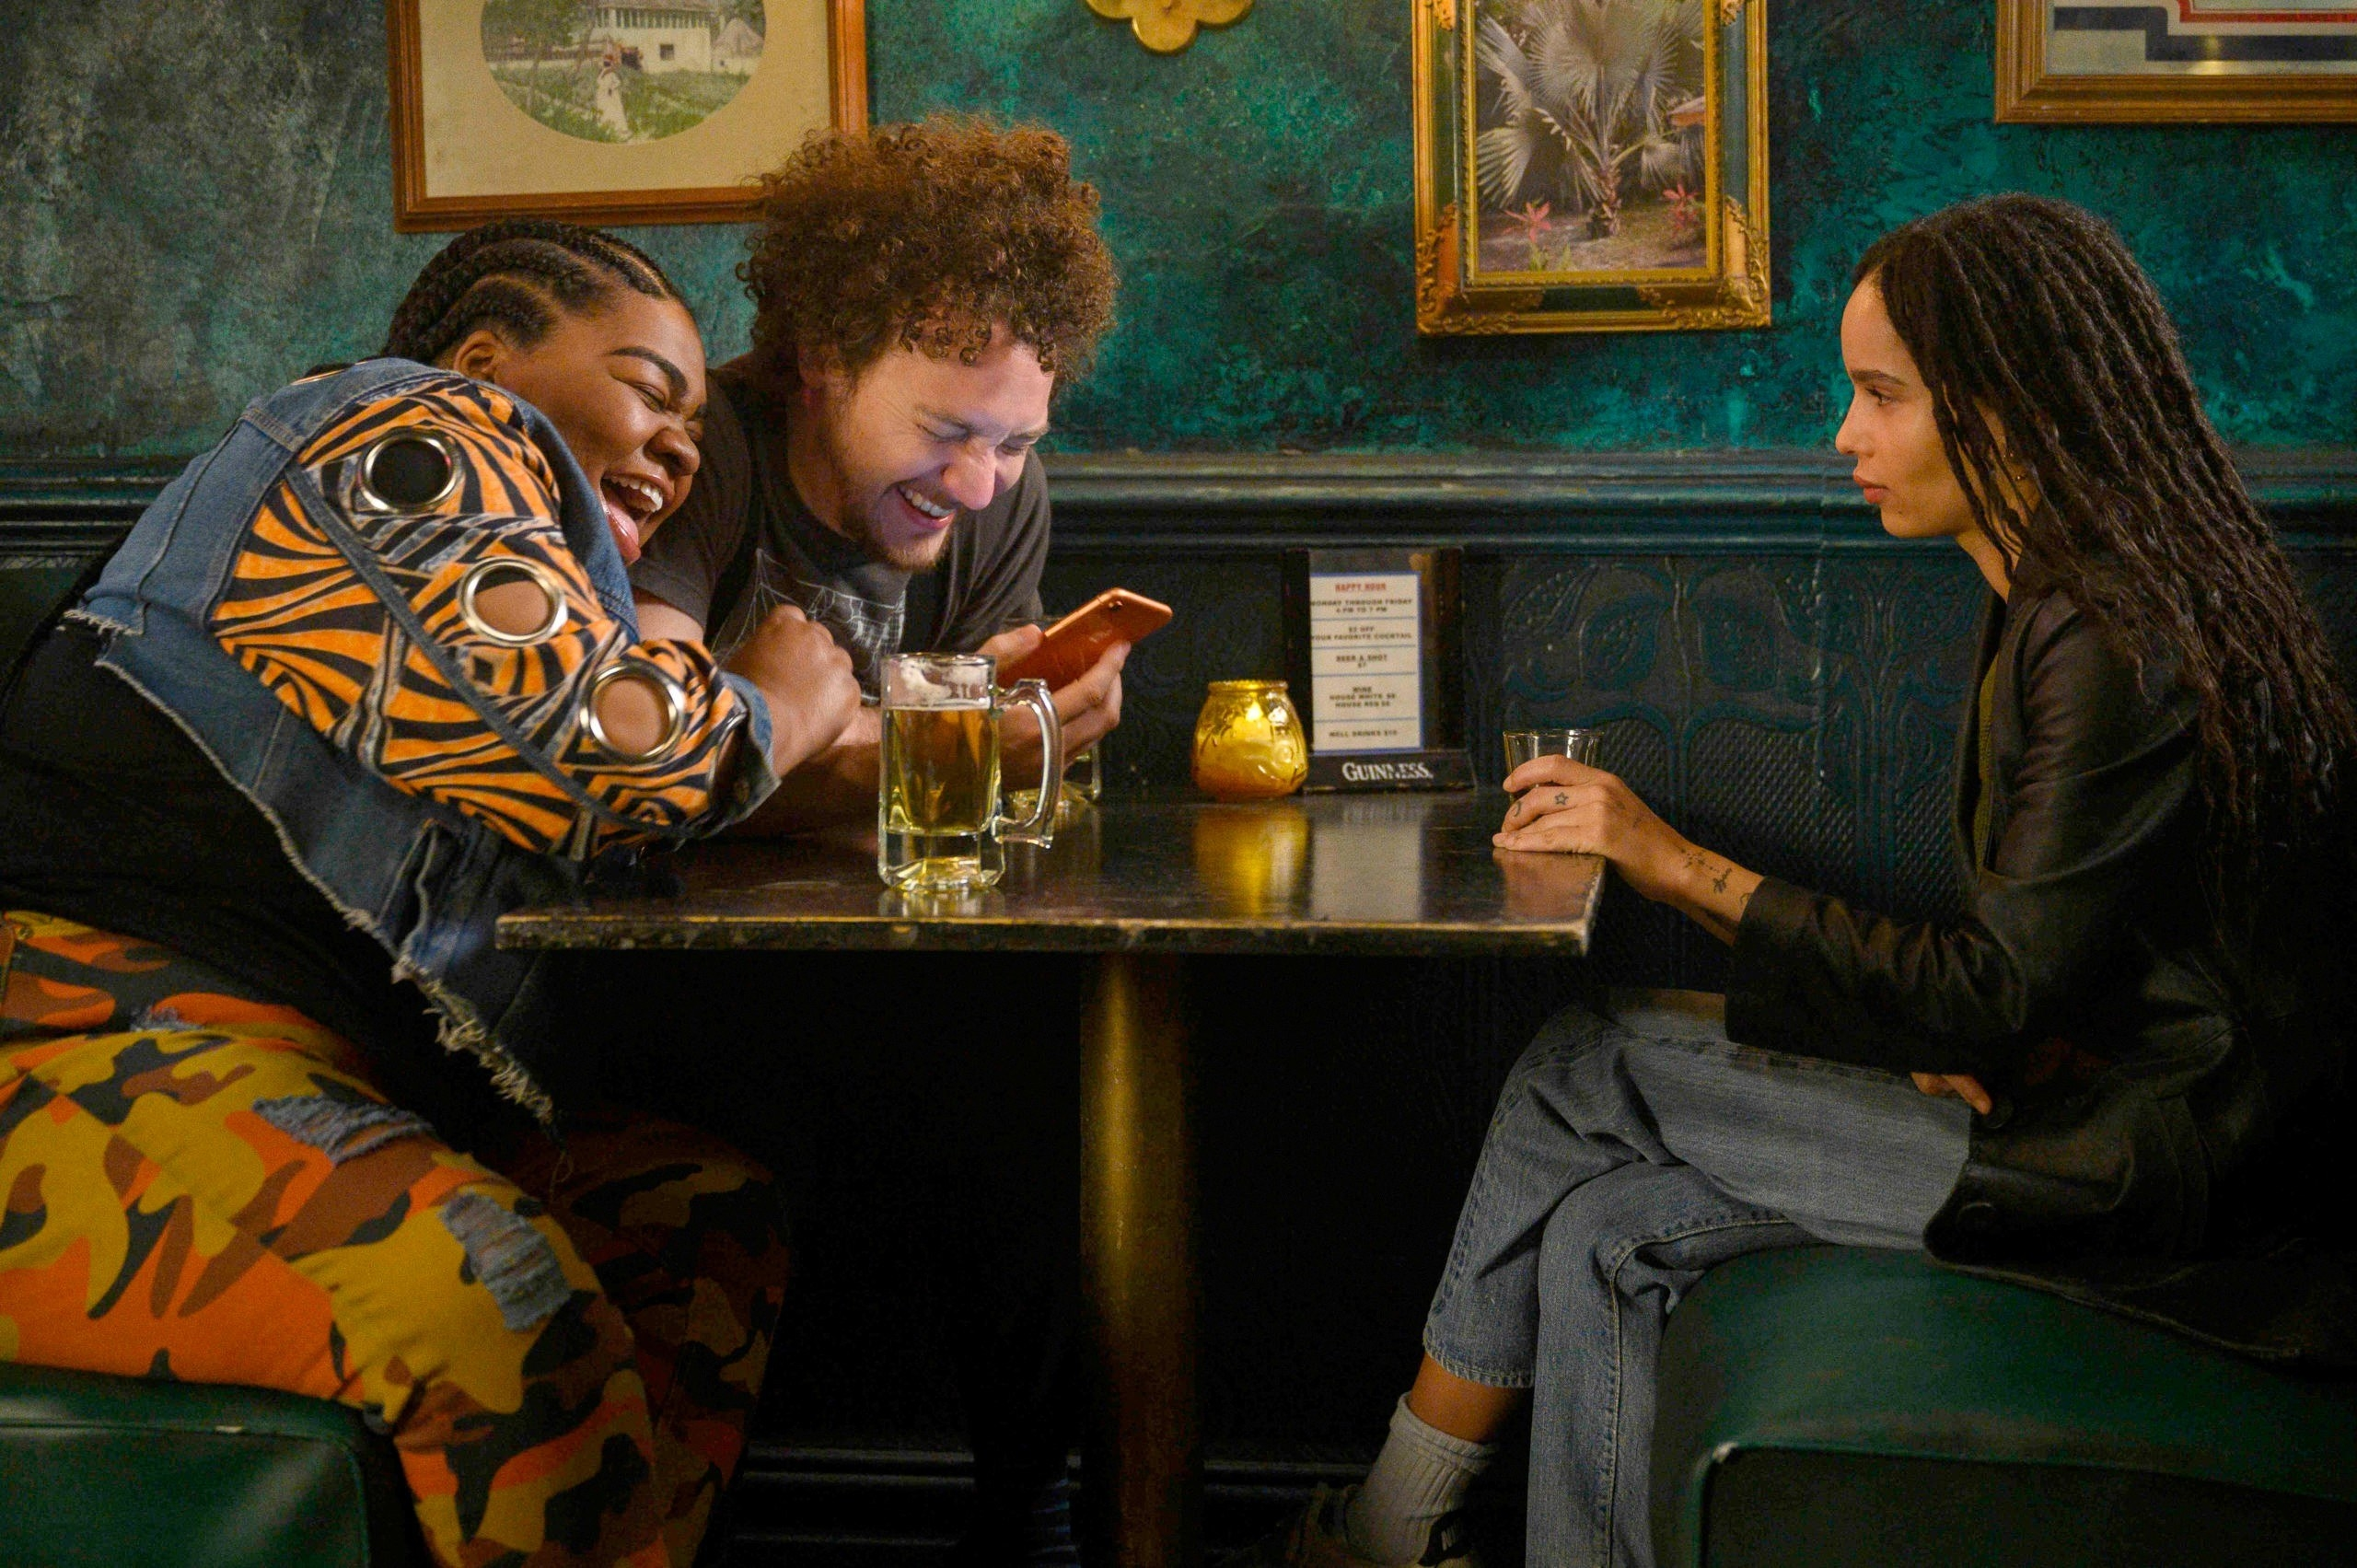 """Friends laughing at something on a phone in a bar booth in """"High Fidelity"""" scene"""